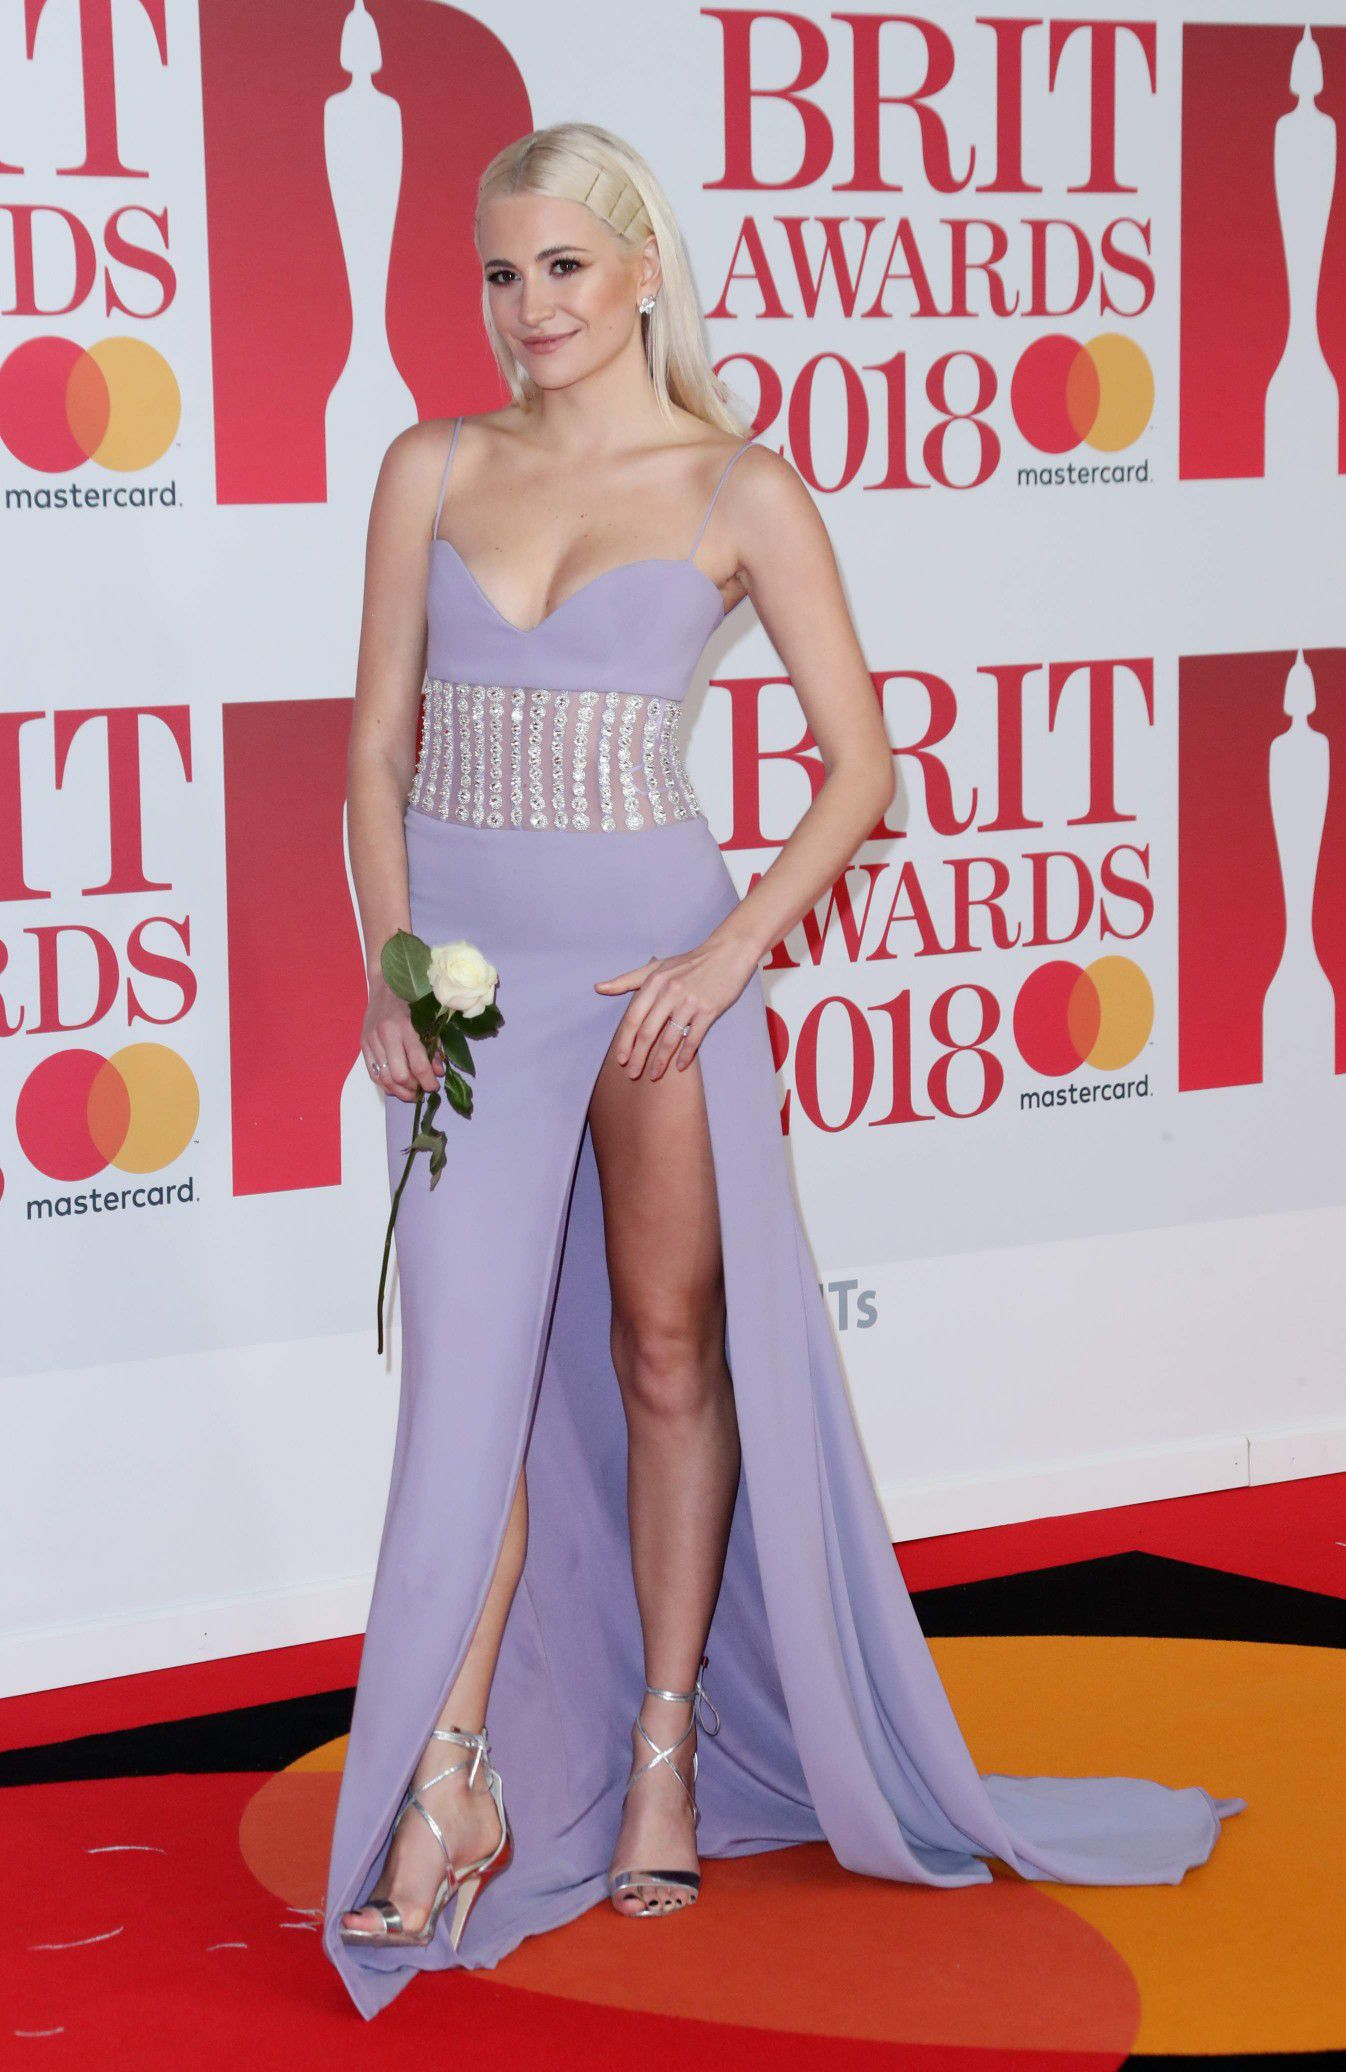 pixie-lott-panty-upskirt-at-the-38th-brit-awards-in-london-1516